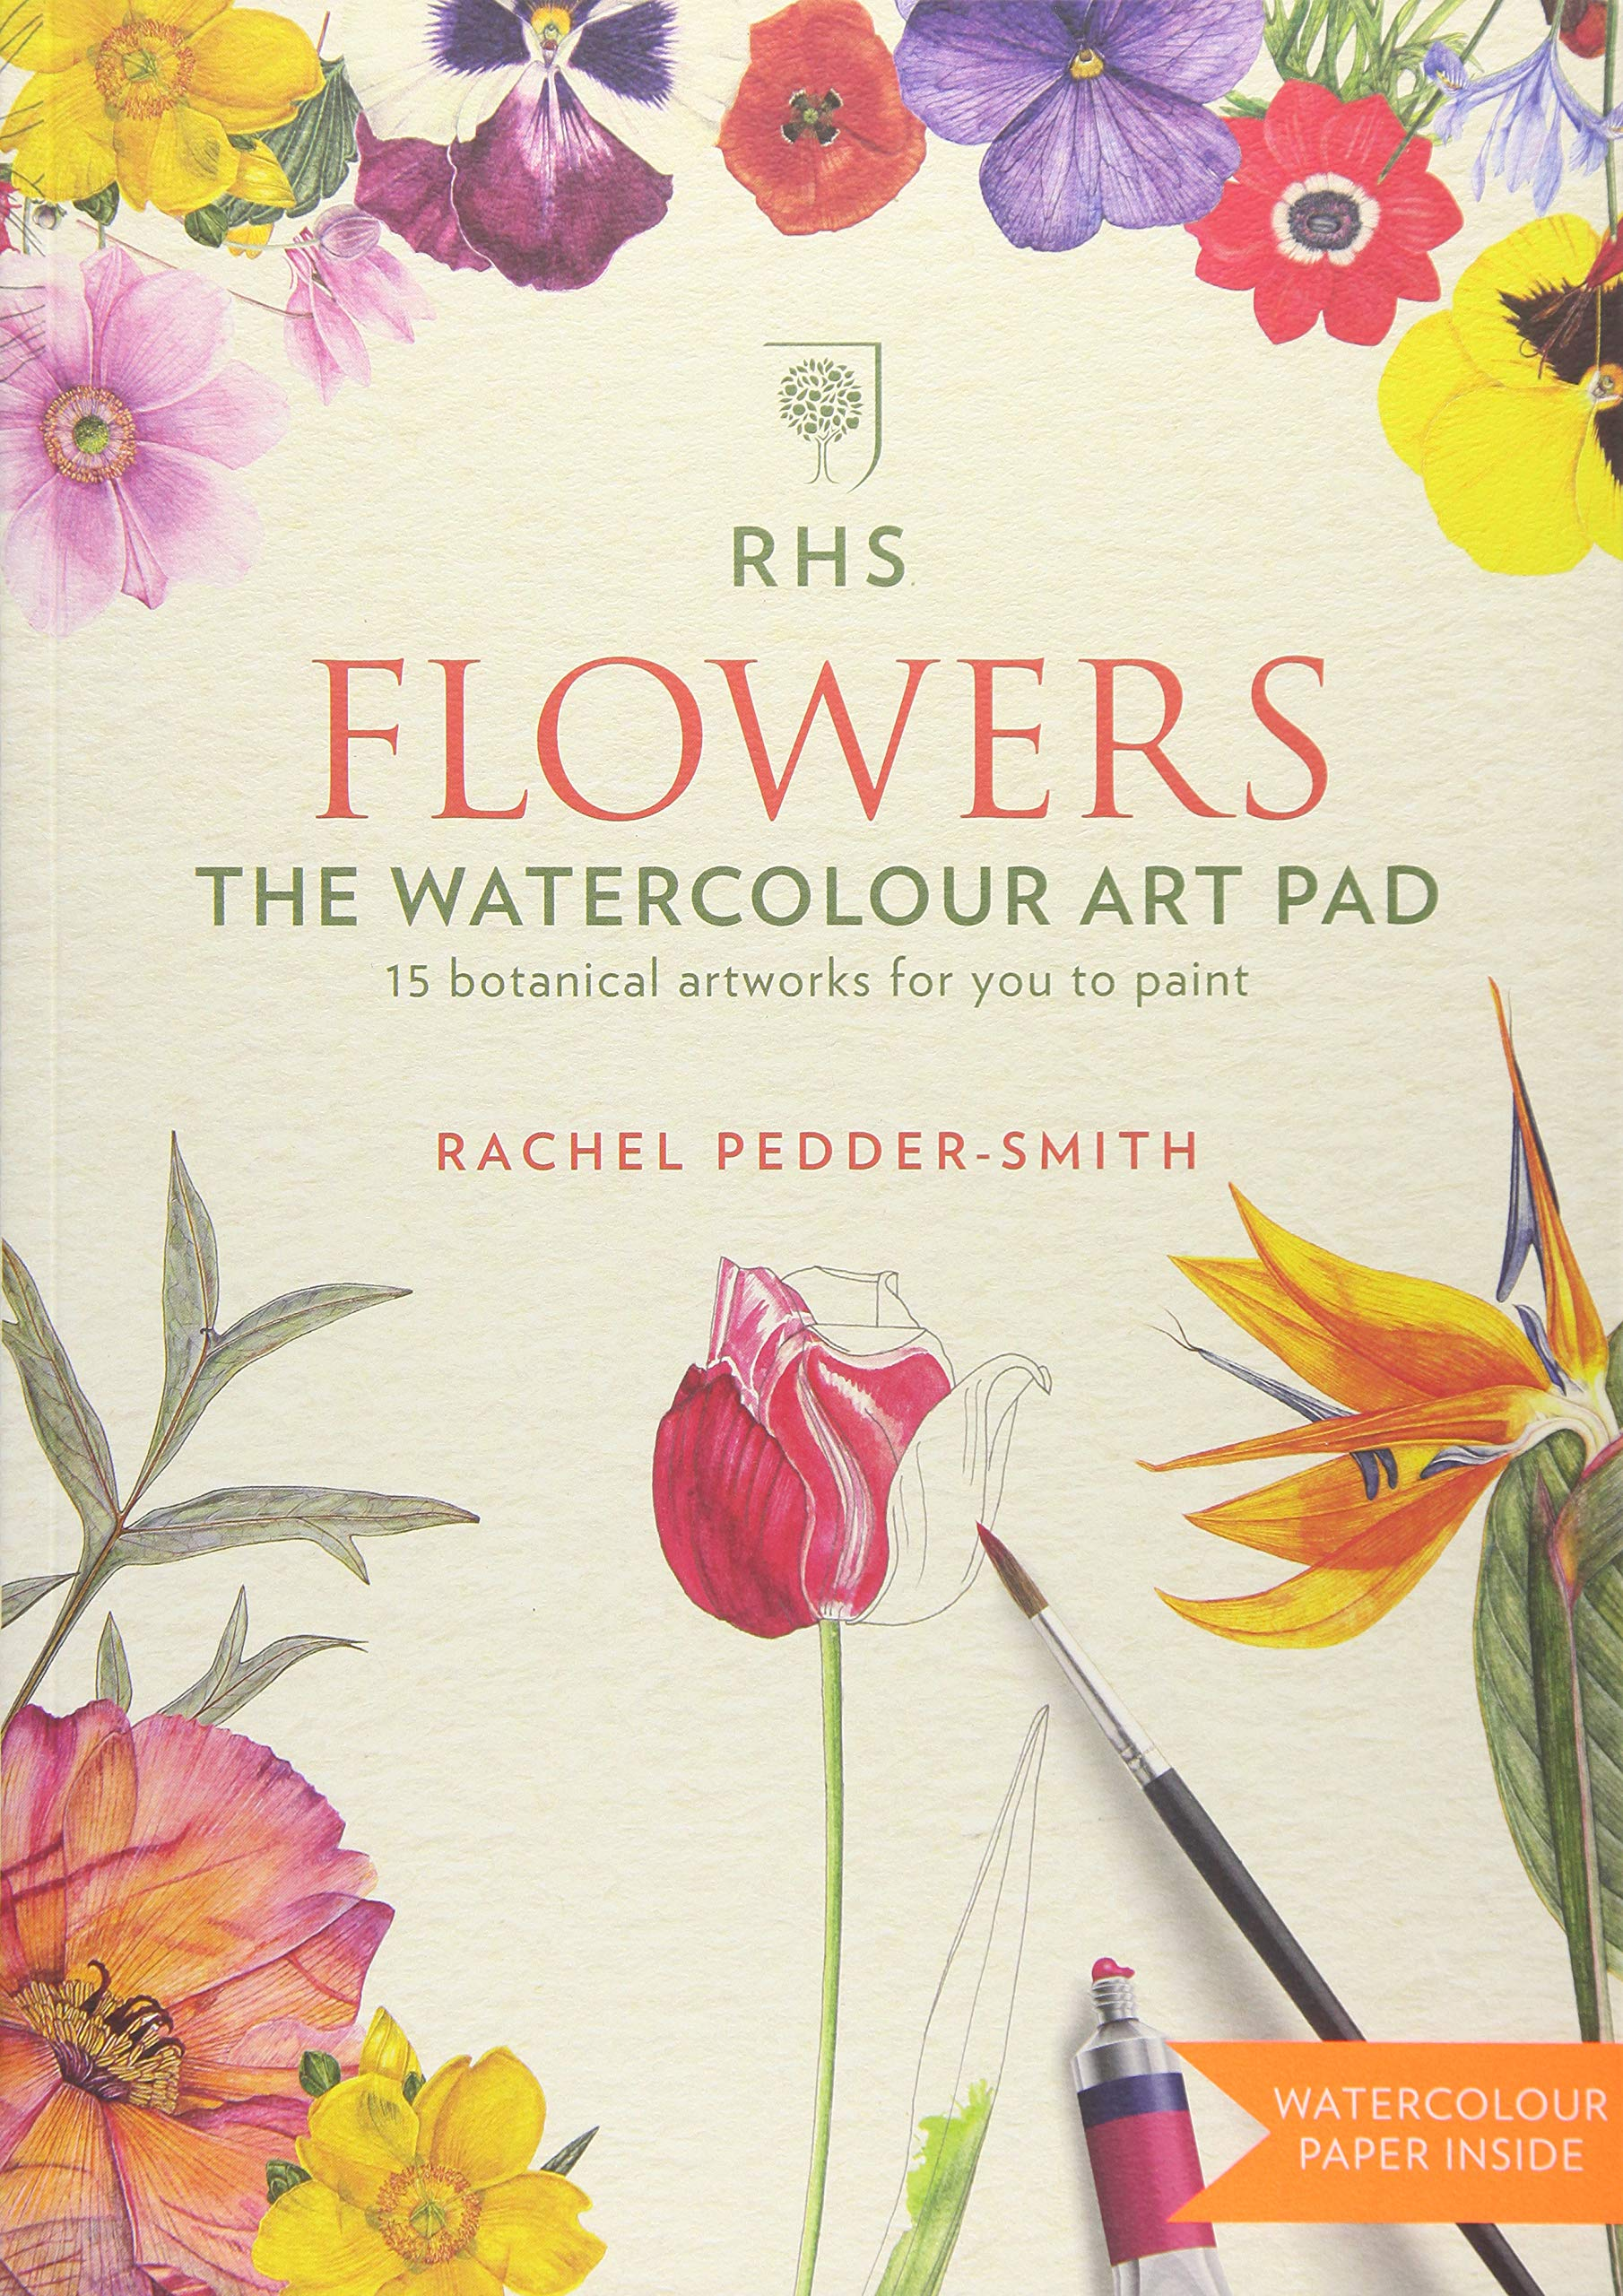 RHS Flowers the Watercolour Art Pad pdf